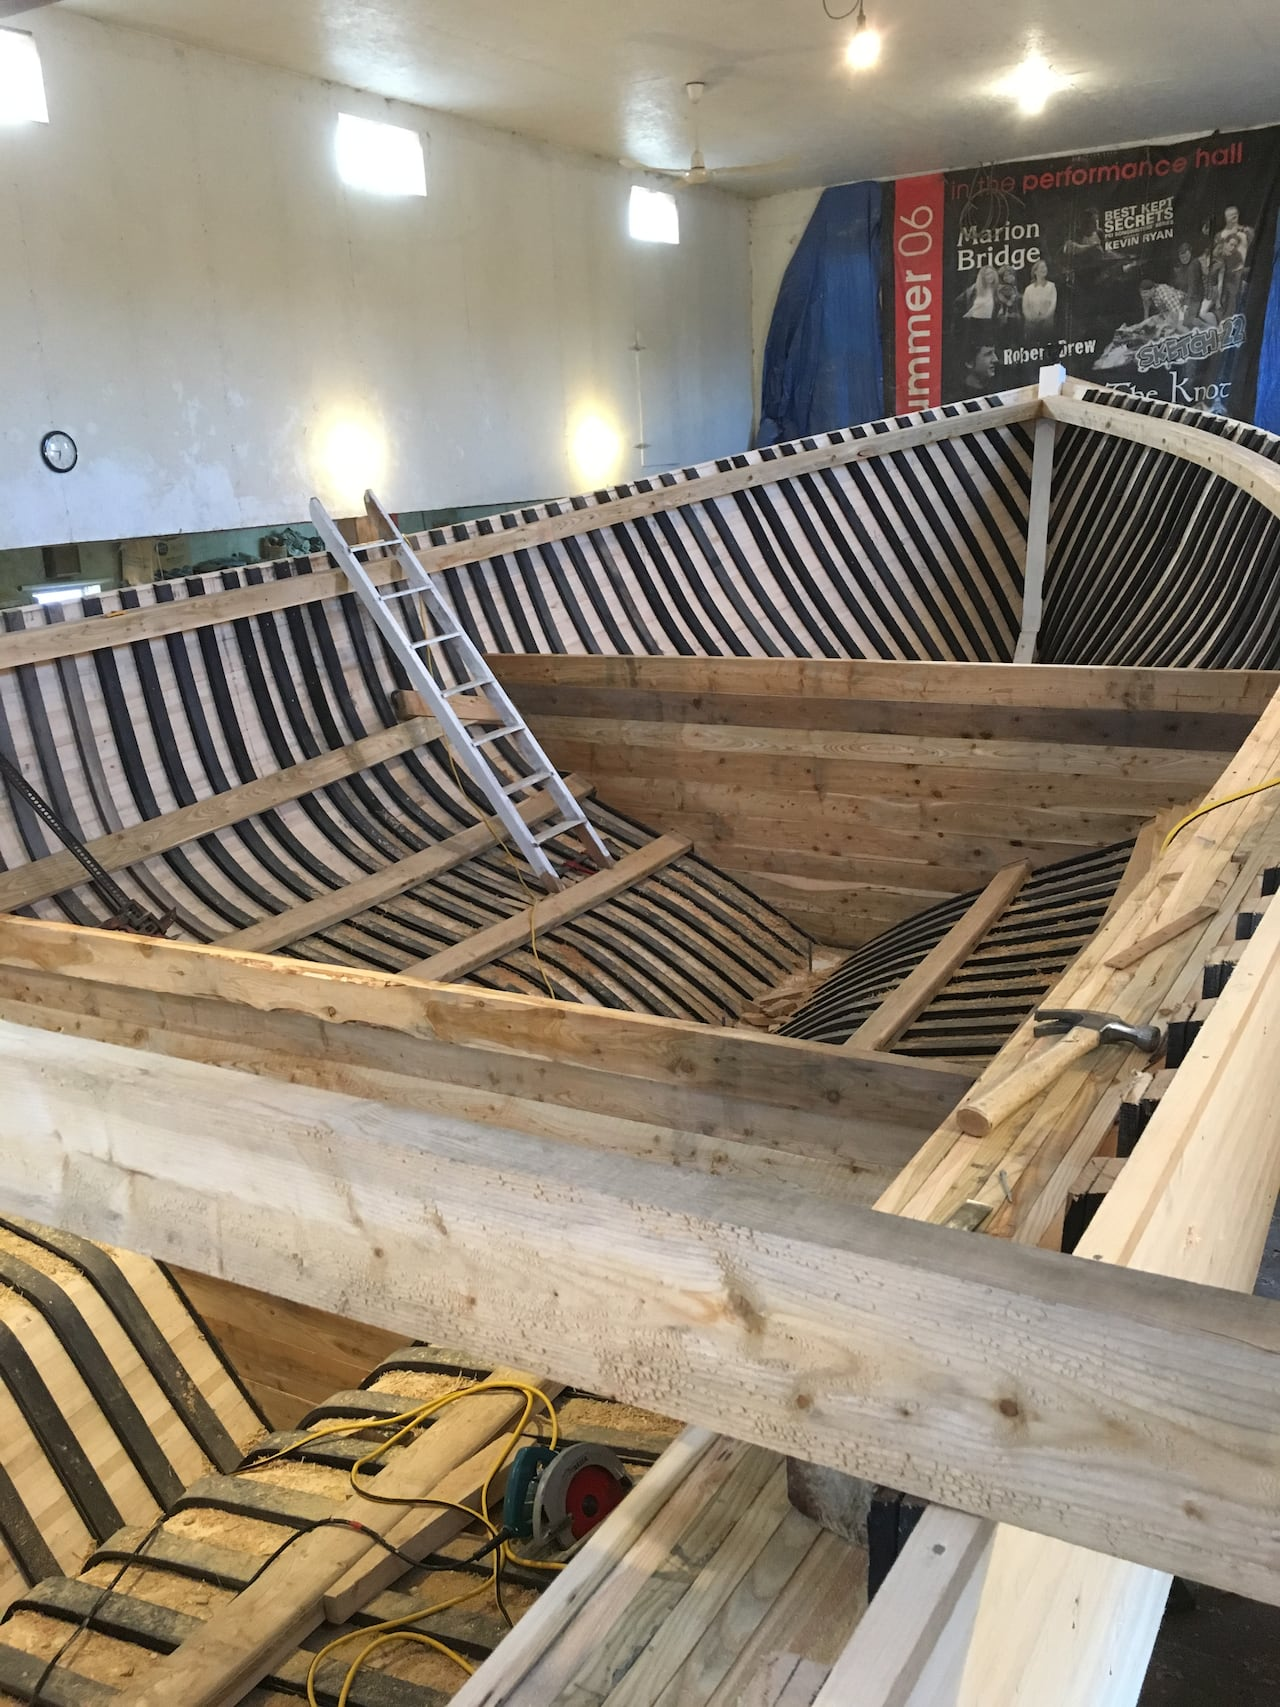 Huge Wooden Boat Being Built Old School On Pei Cbc News